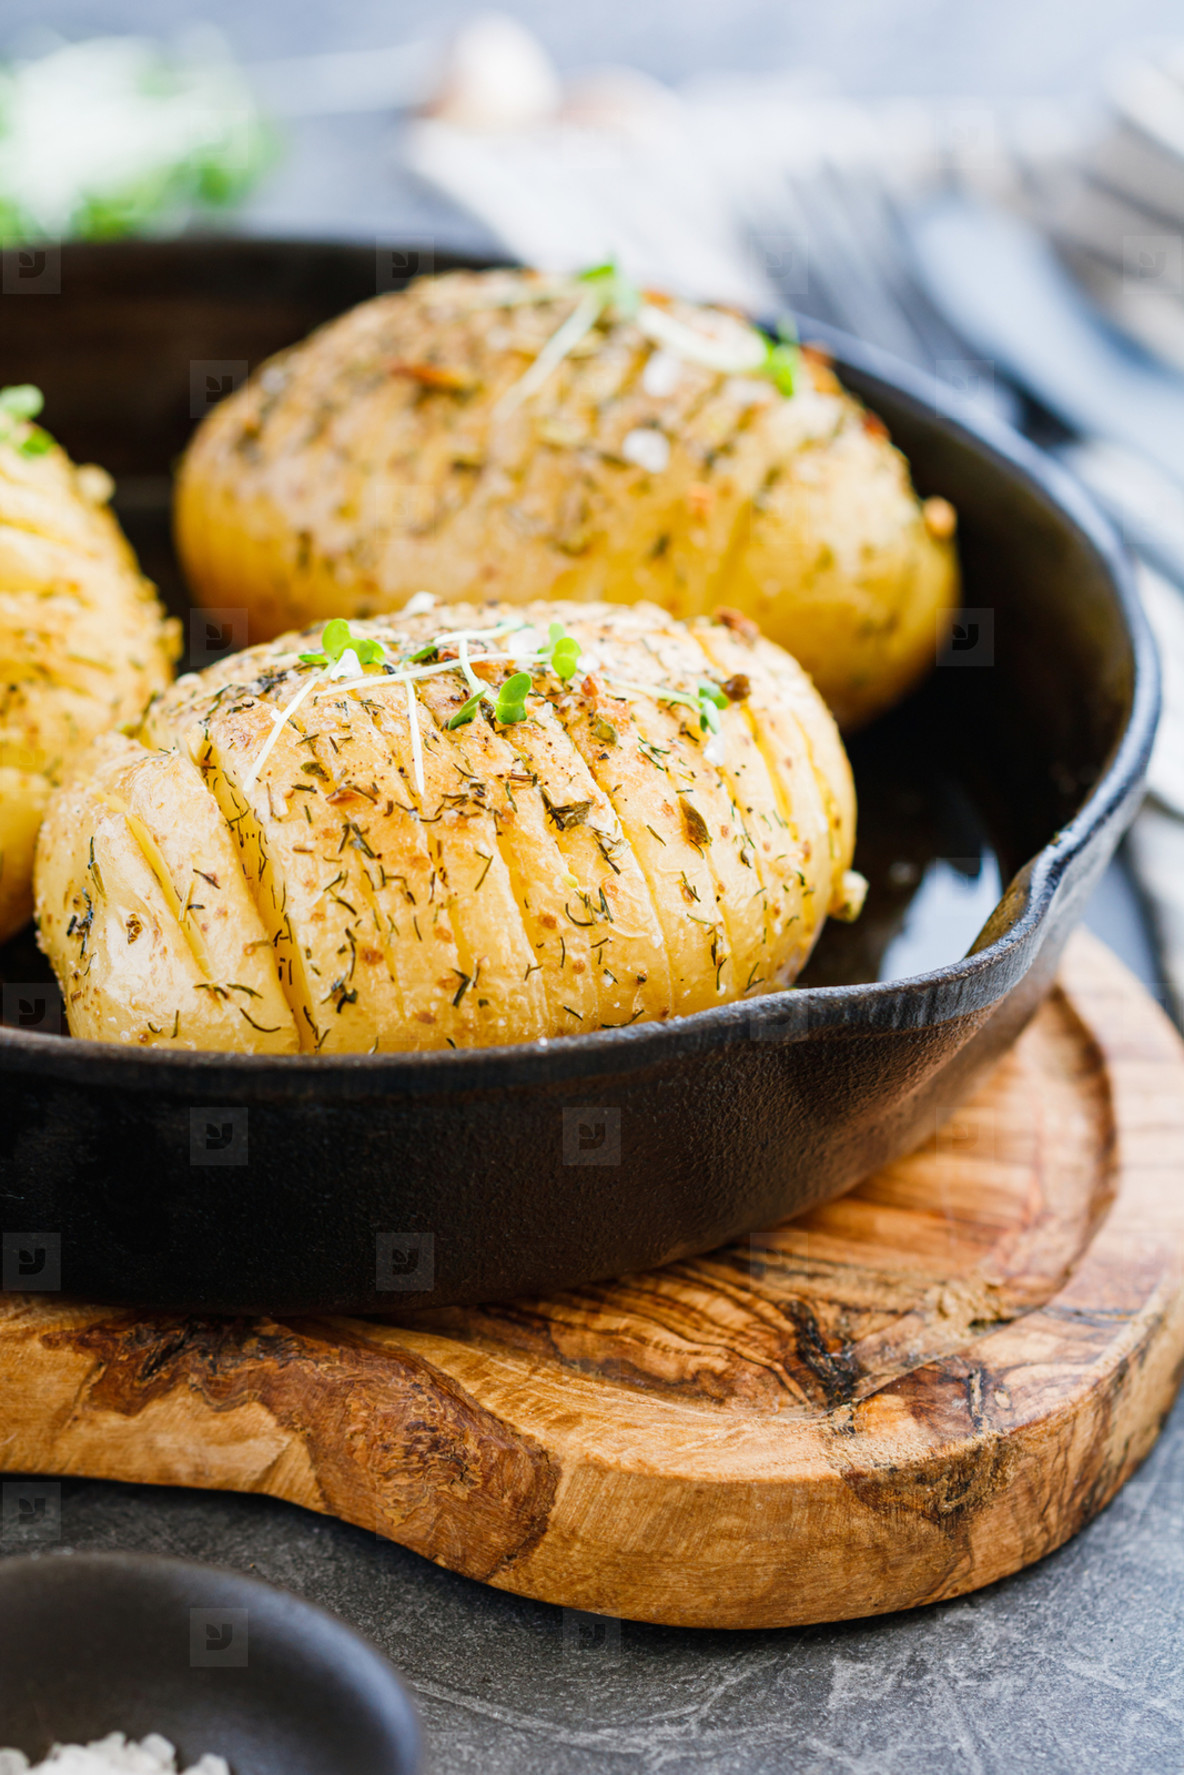 Close up of homemade baked potato with olive oil  garlic  rosemary  mustard  dill and black pepper in a cost fry pan